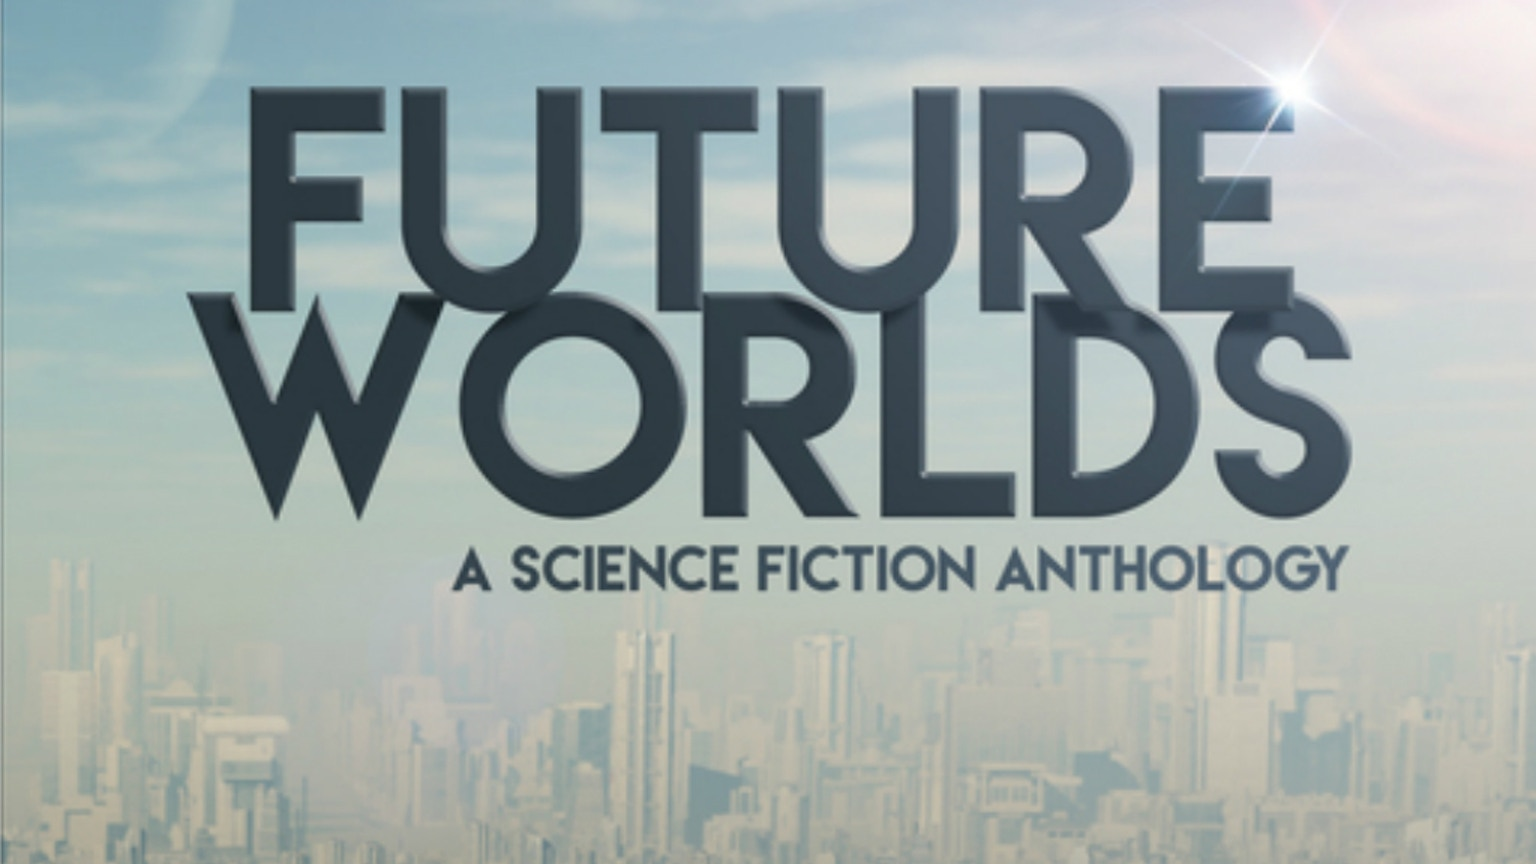 Best selling science fiction authors